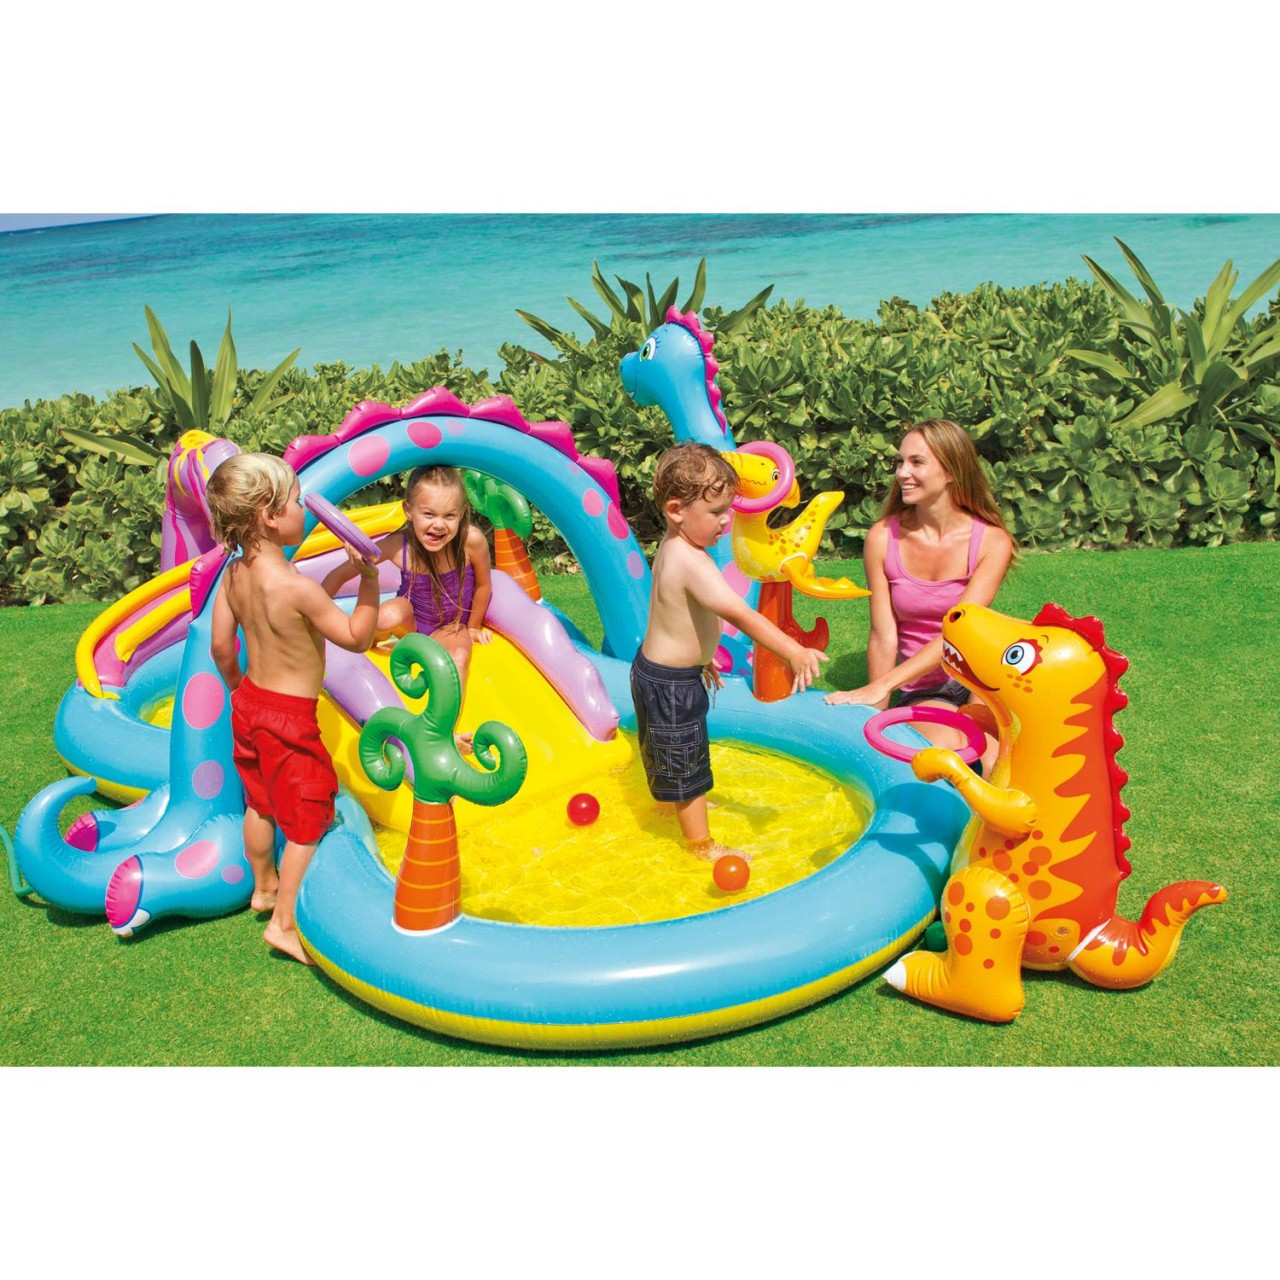 Intex 57135 Play Center Dinoland Planschbecken Pool Wasserrutsche +Bälle